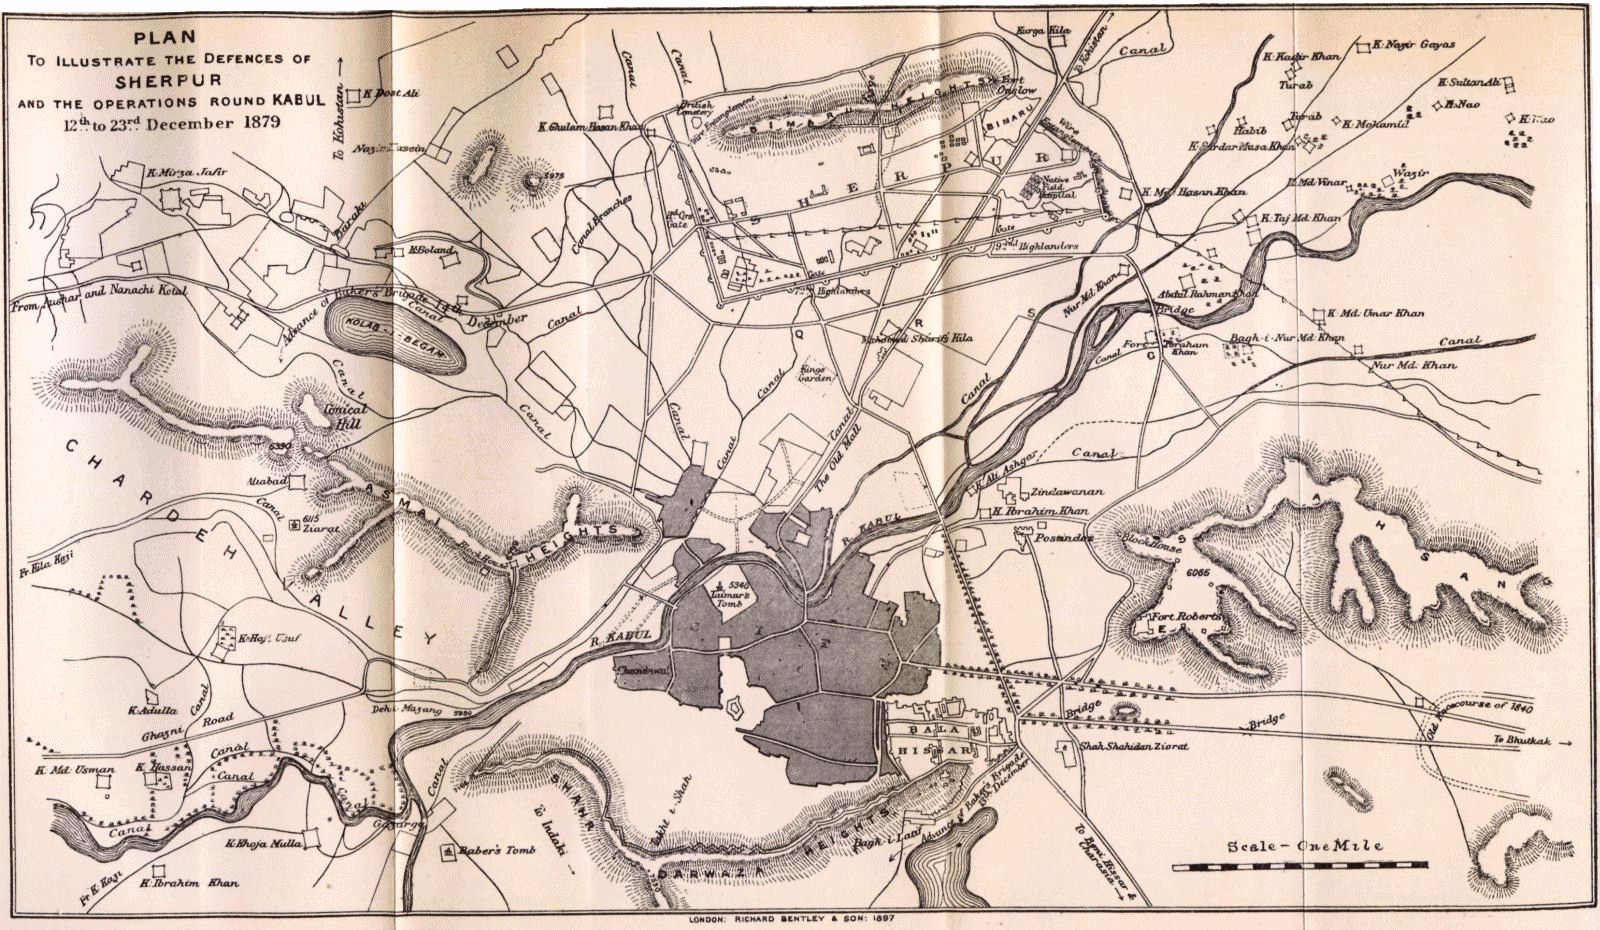 map7defencessherpurkabul-1600